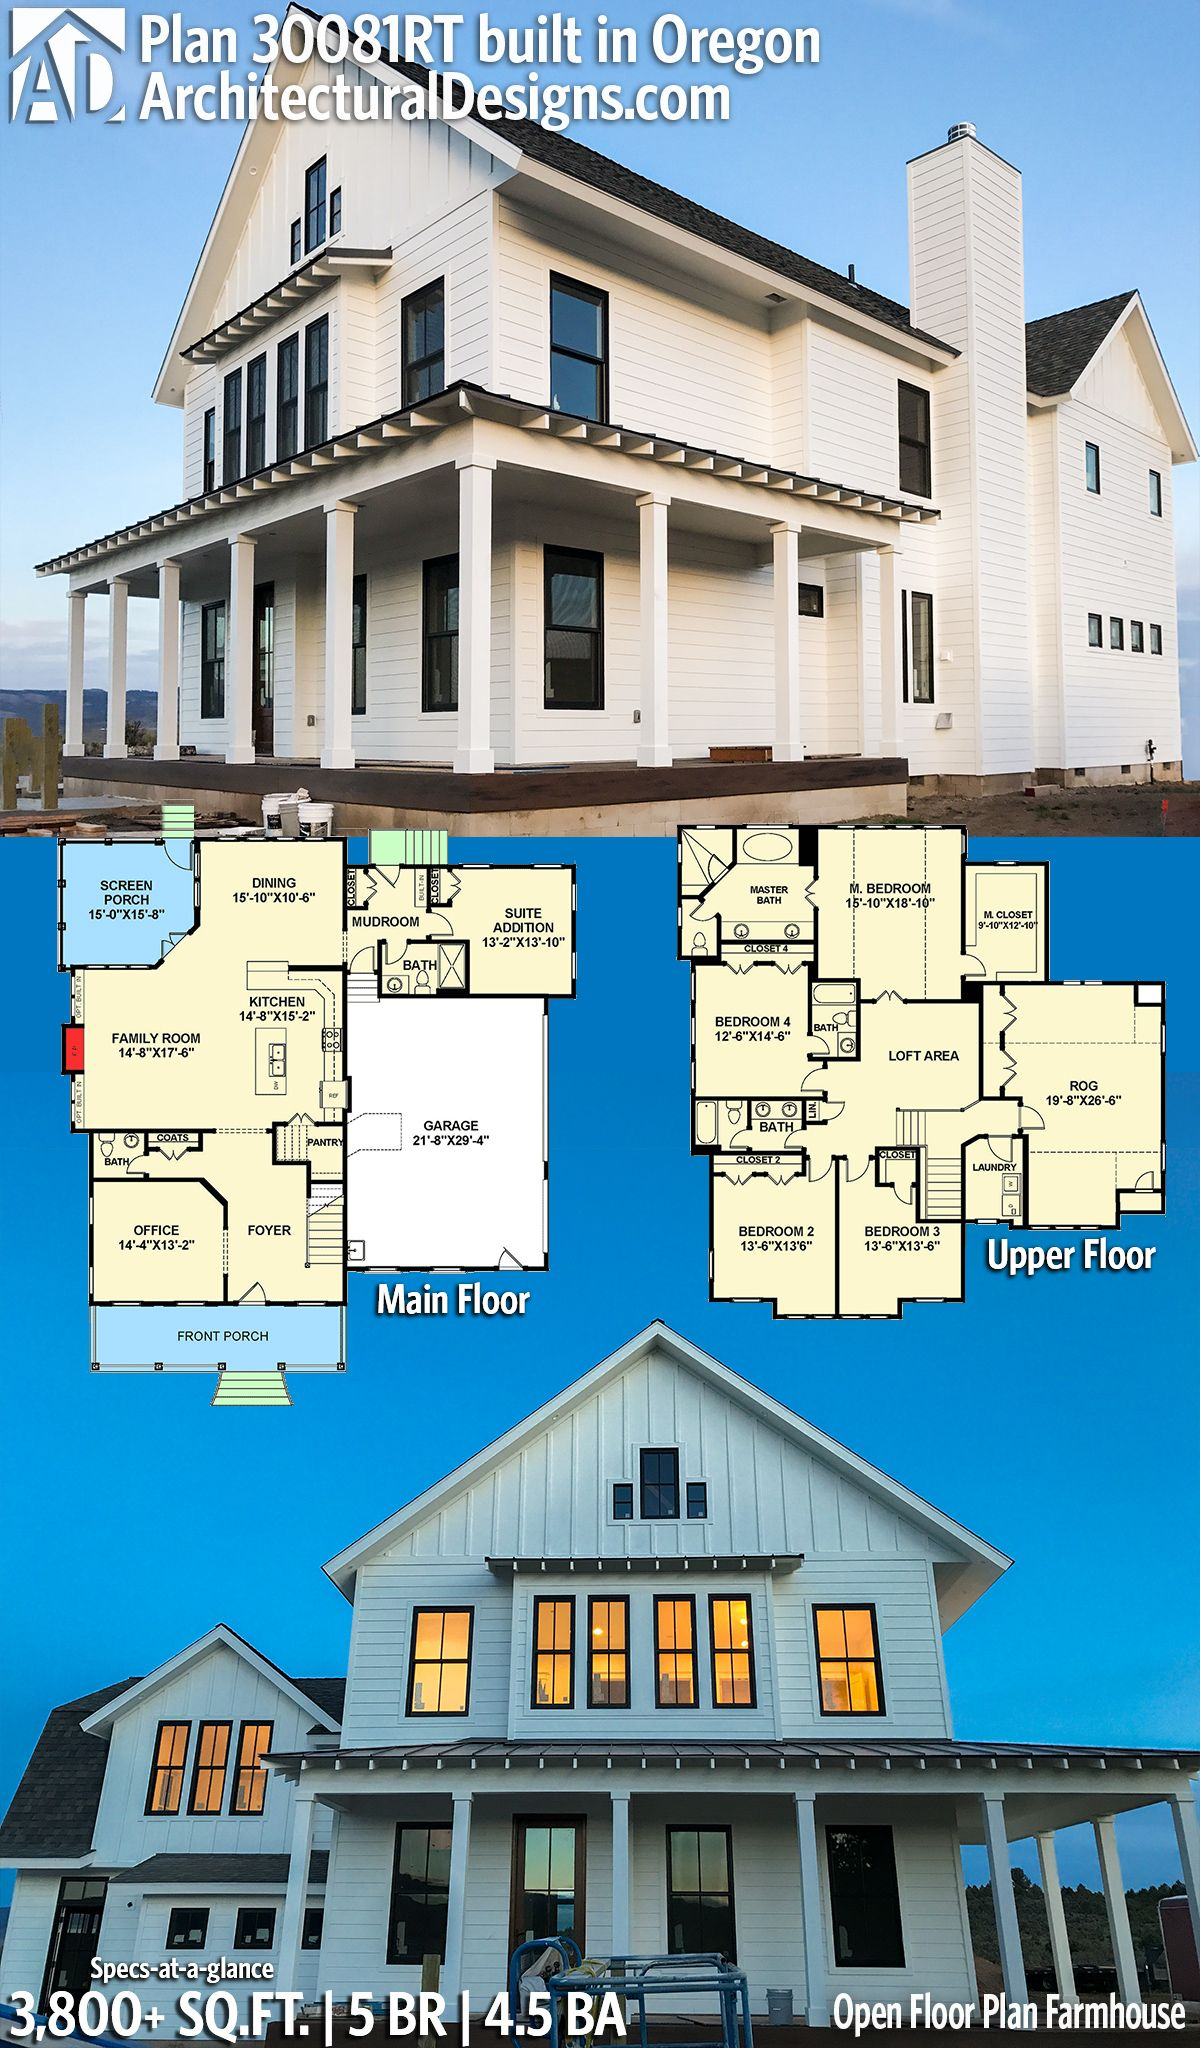 Architectural designs house plan rt client built in oregon br ba sq ft ready when you are where do want to build also open floor farmhouse home pinterest rh